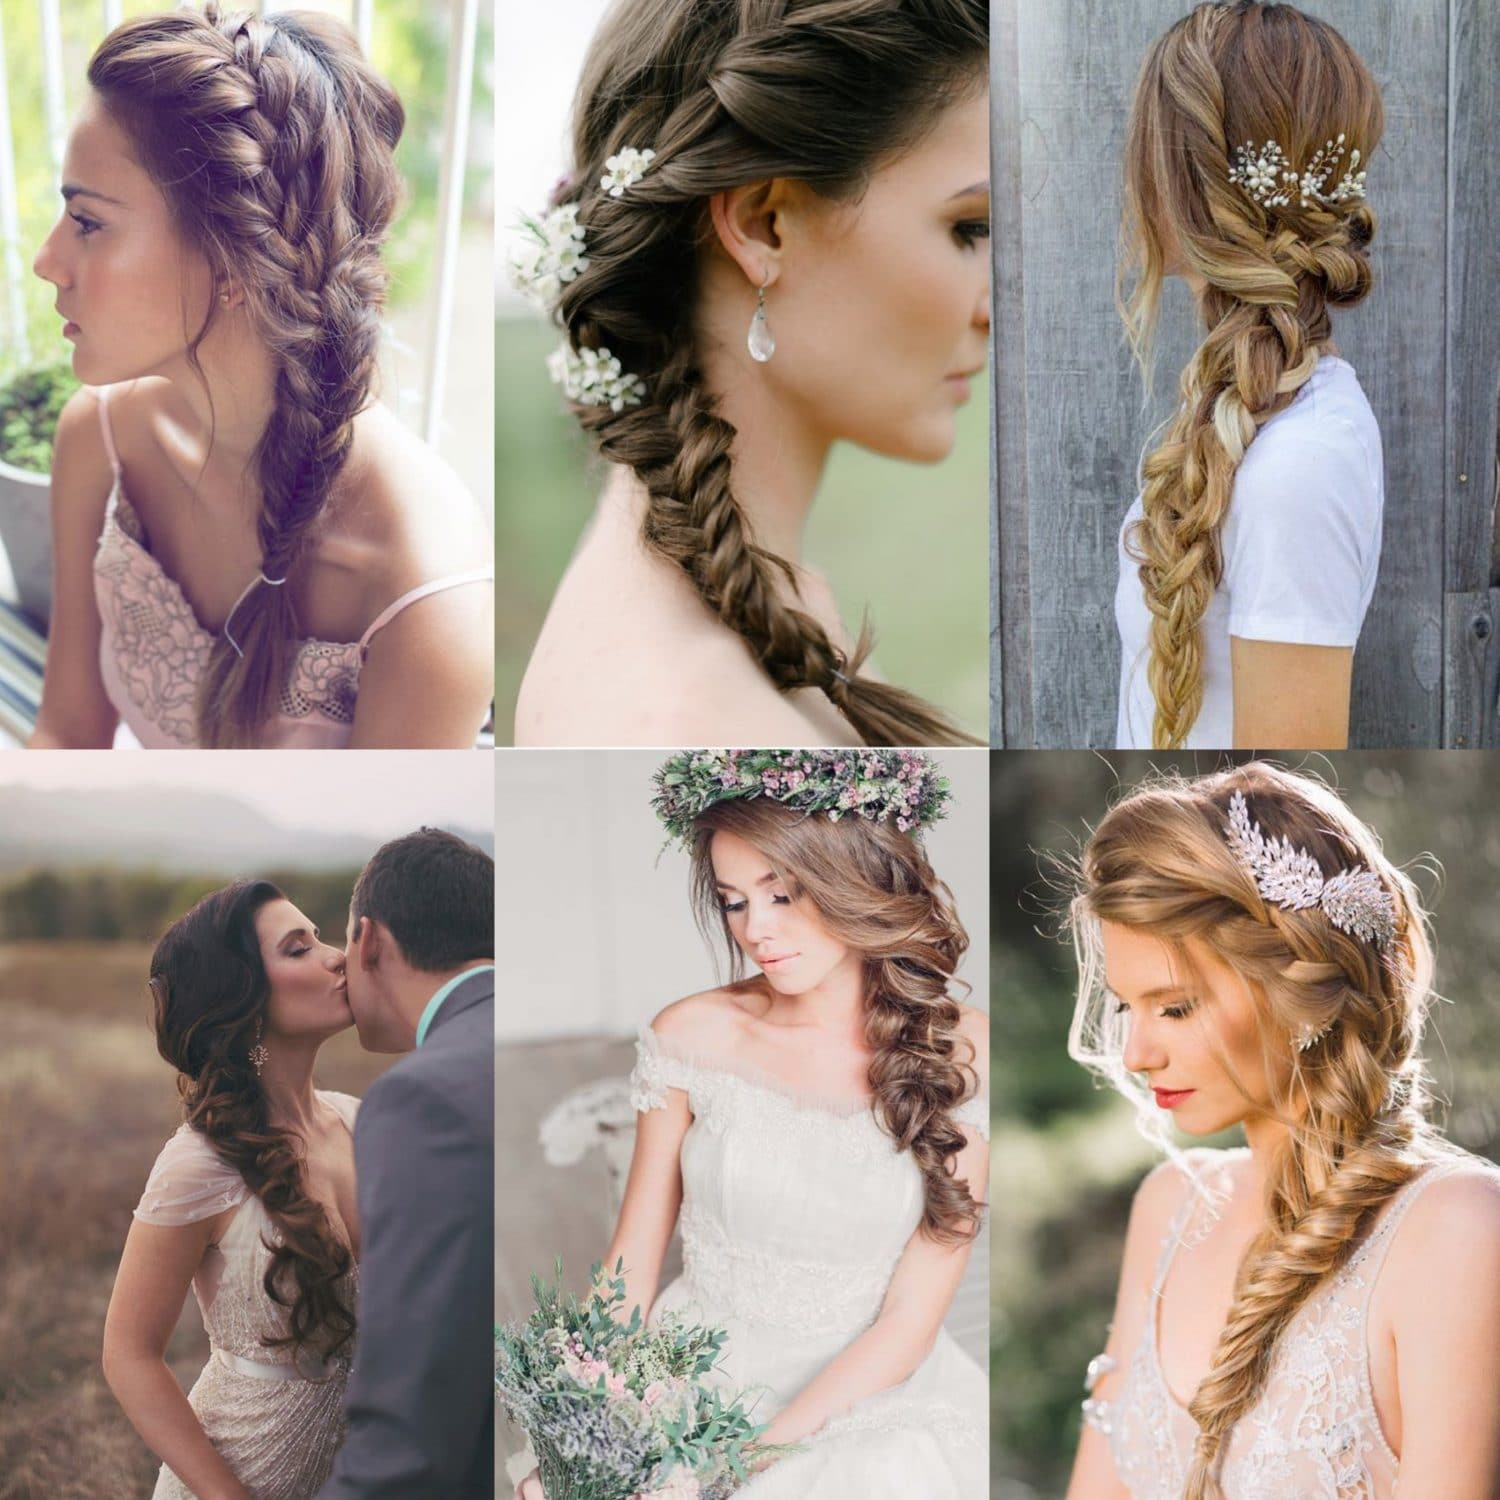 Fishtail Braid Wedding Hairstyles: Capesthorne Hall And Weddings